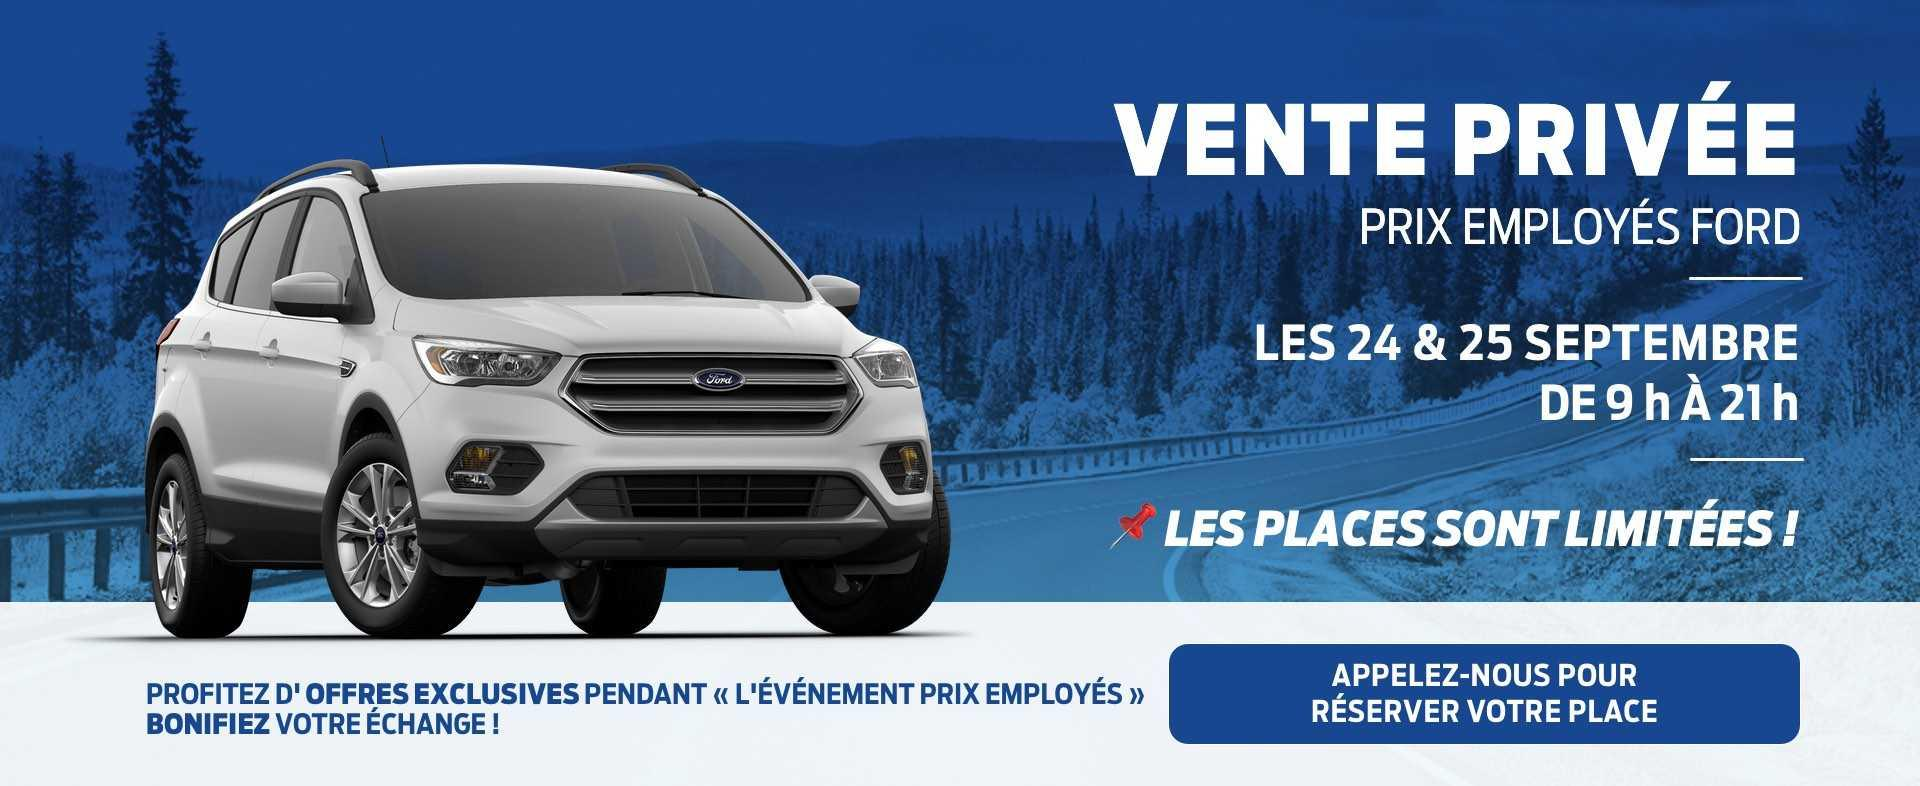 Vente privée septembre 2019